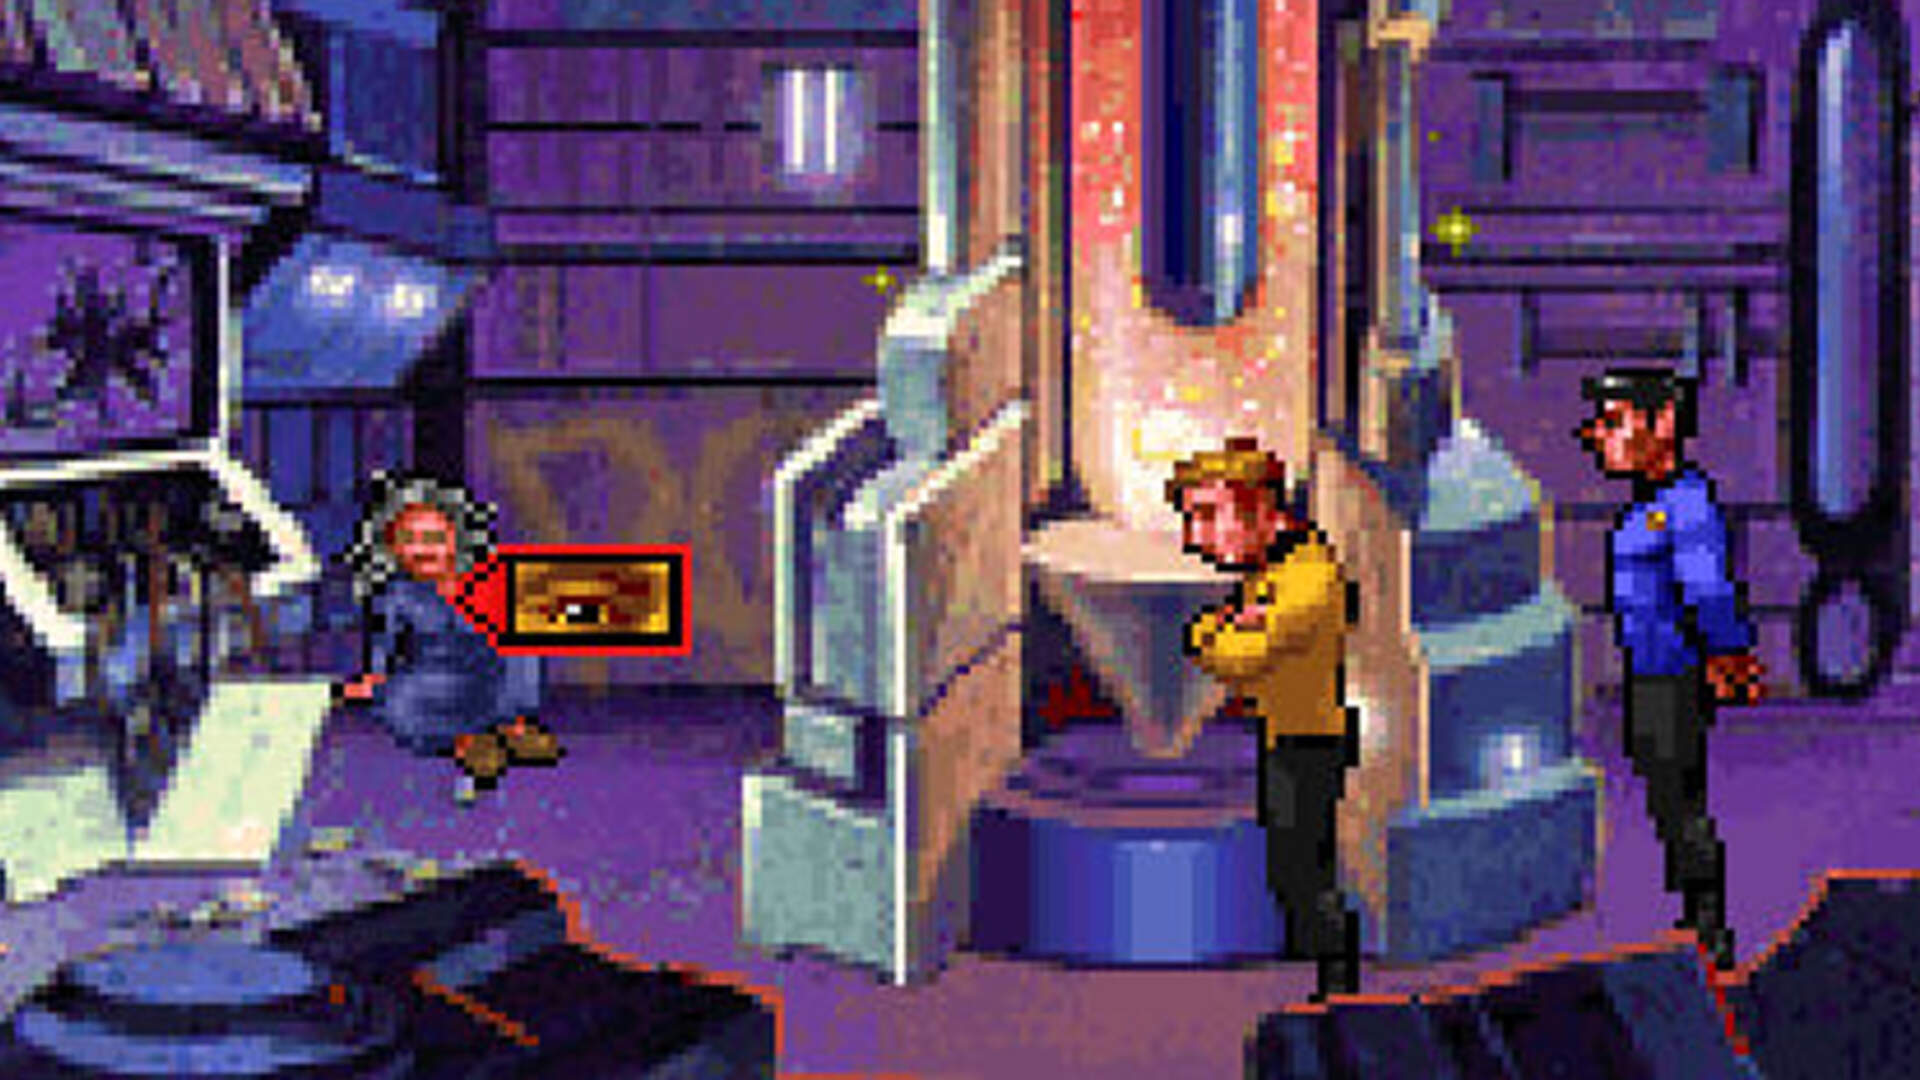 Can a New TV Series Revive the Fortunes of Star Trek's Video Games?